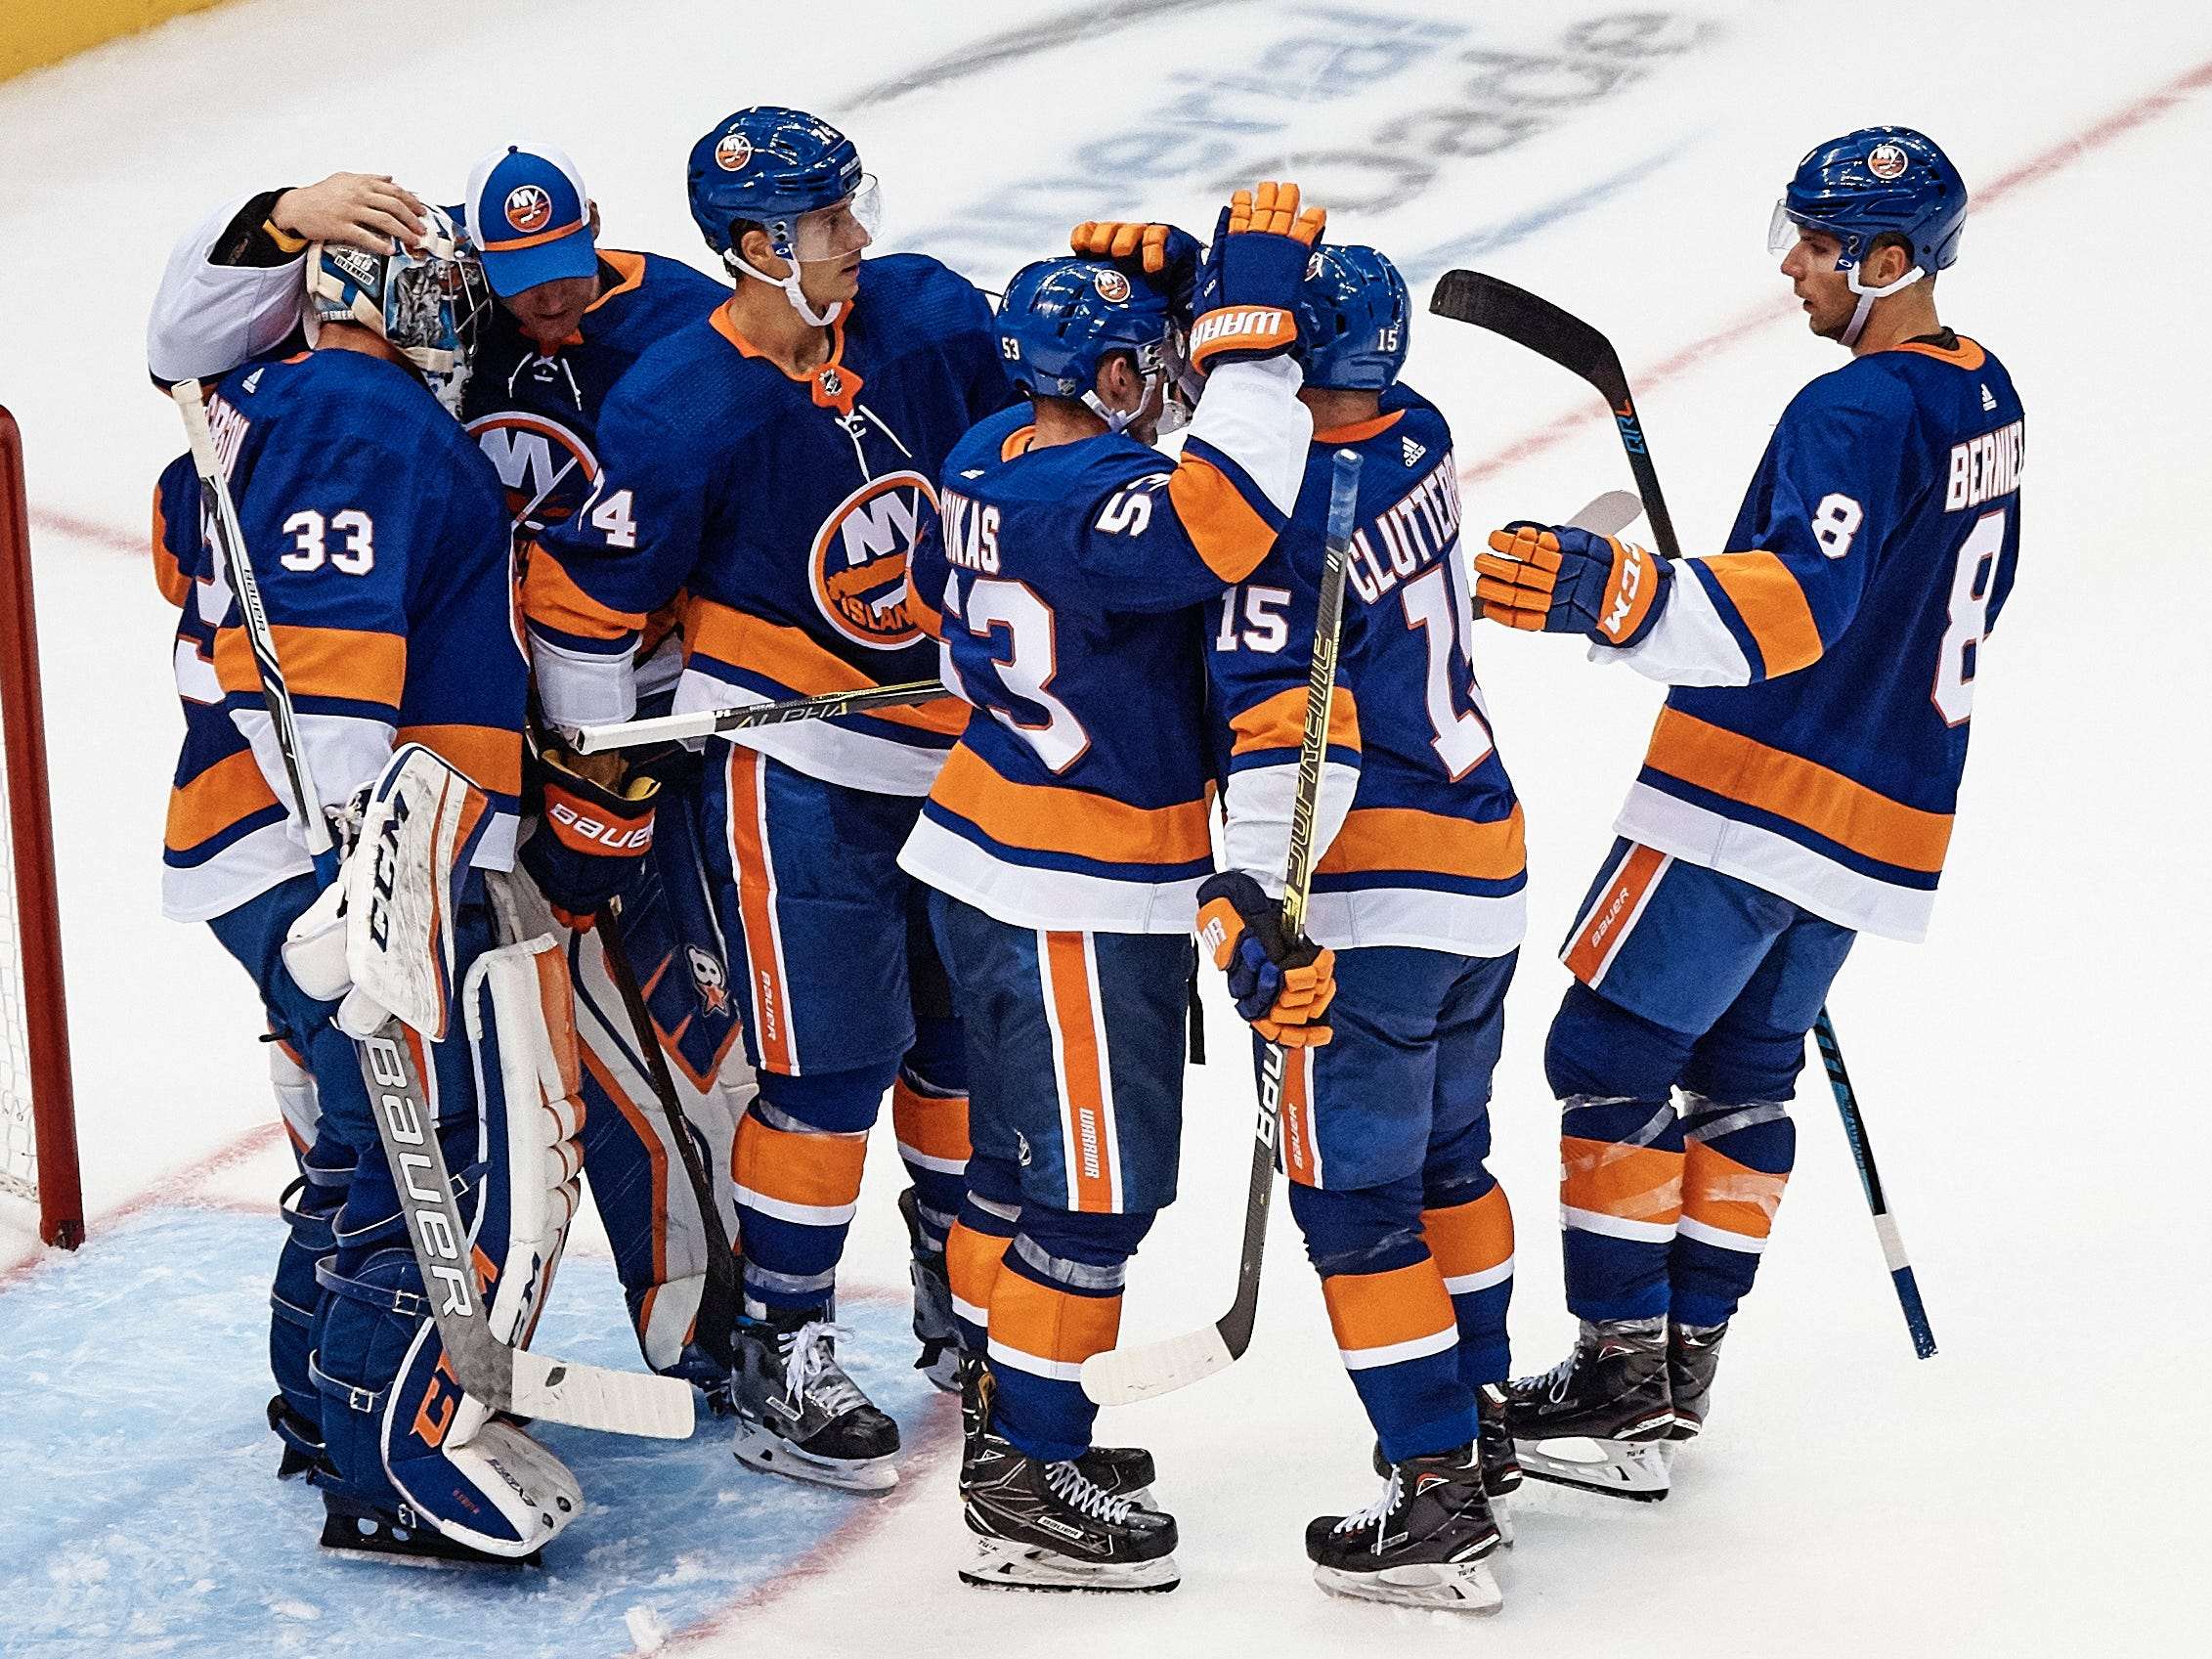 Sept. 16: New York Islanders players celebrate their victory against the Philadelphia Flyers.